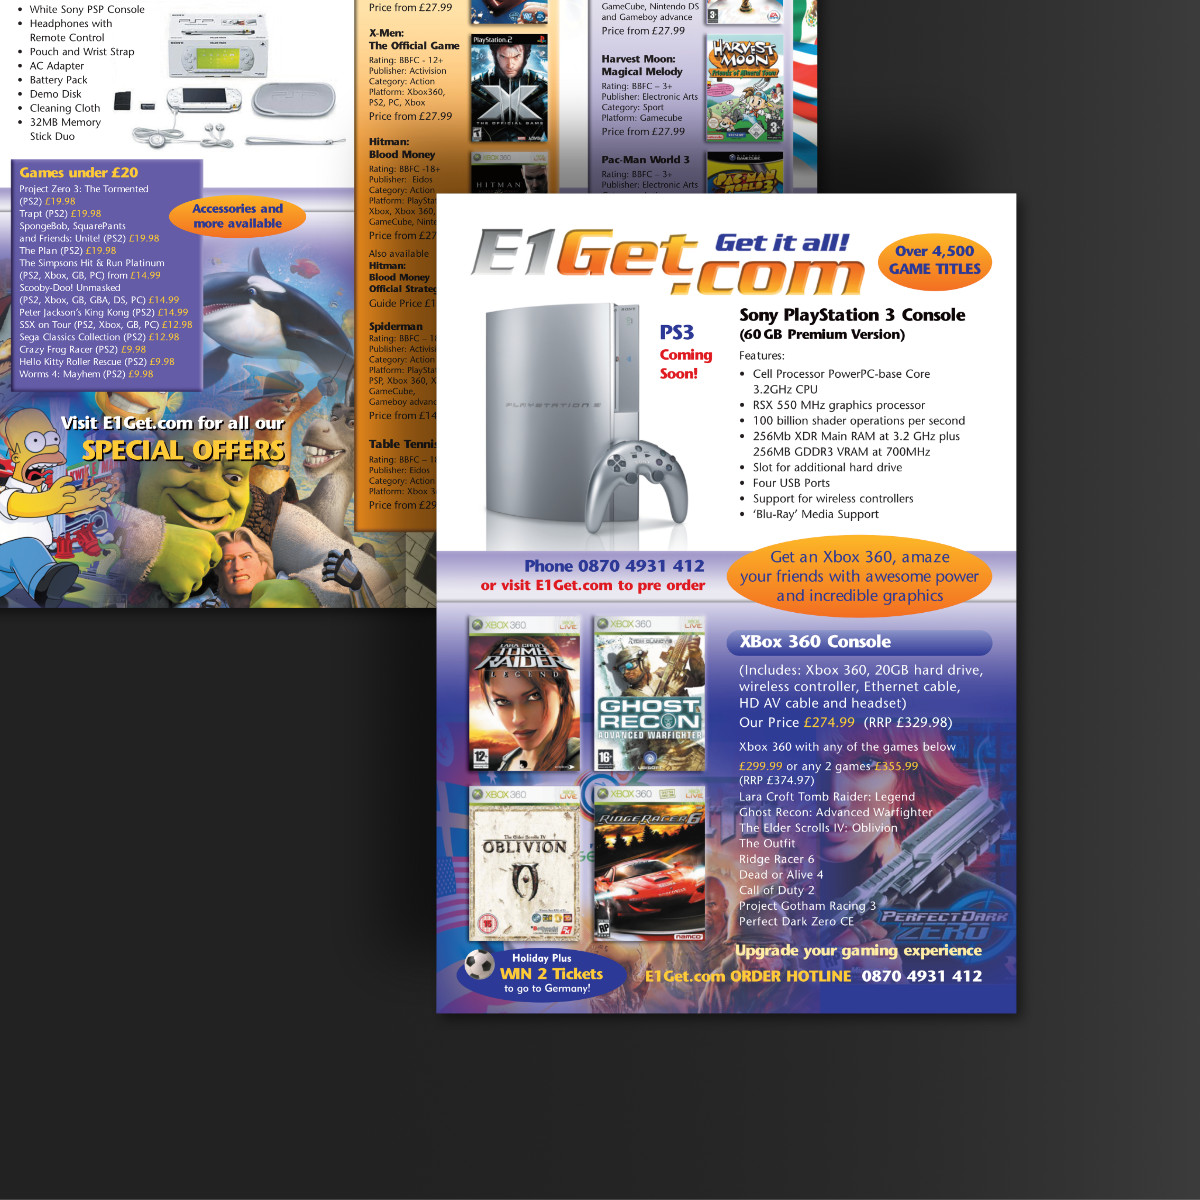 e1get, direct mail, sales brochure, playstation, games, design and print by Orangebox Digital